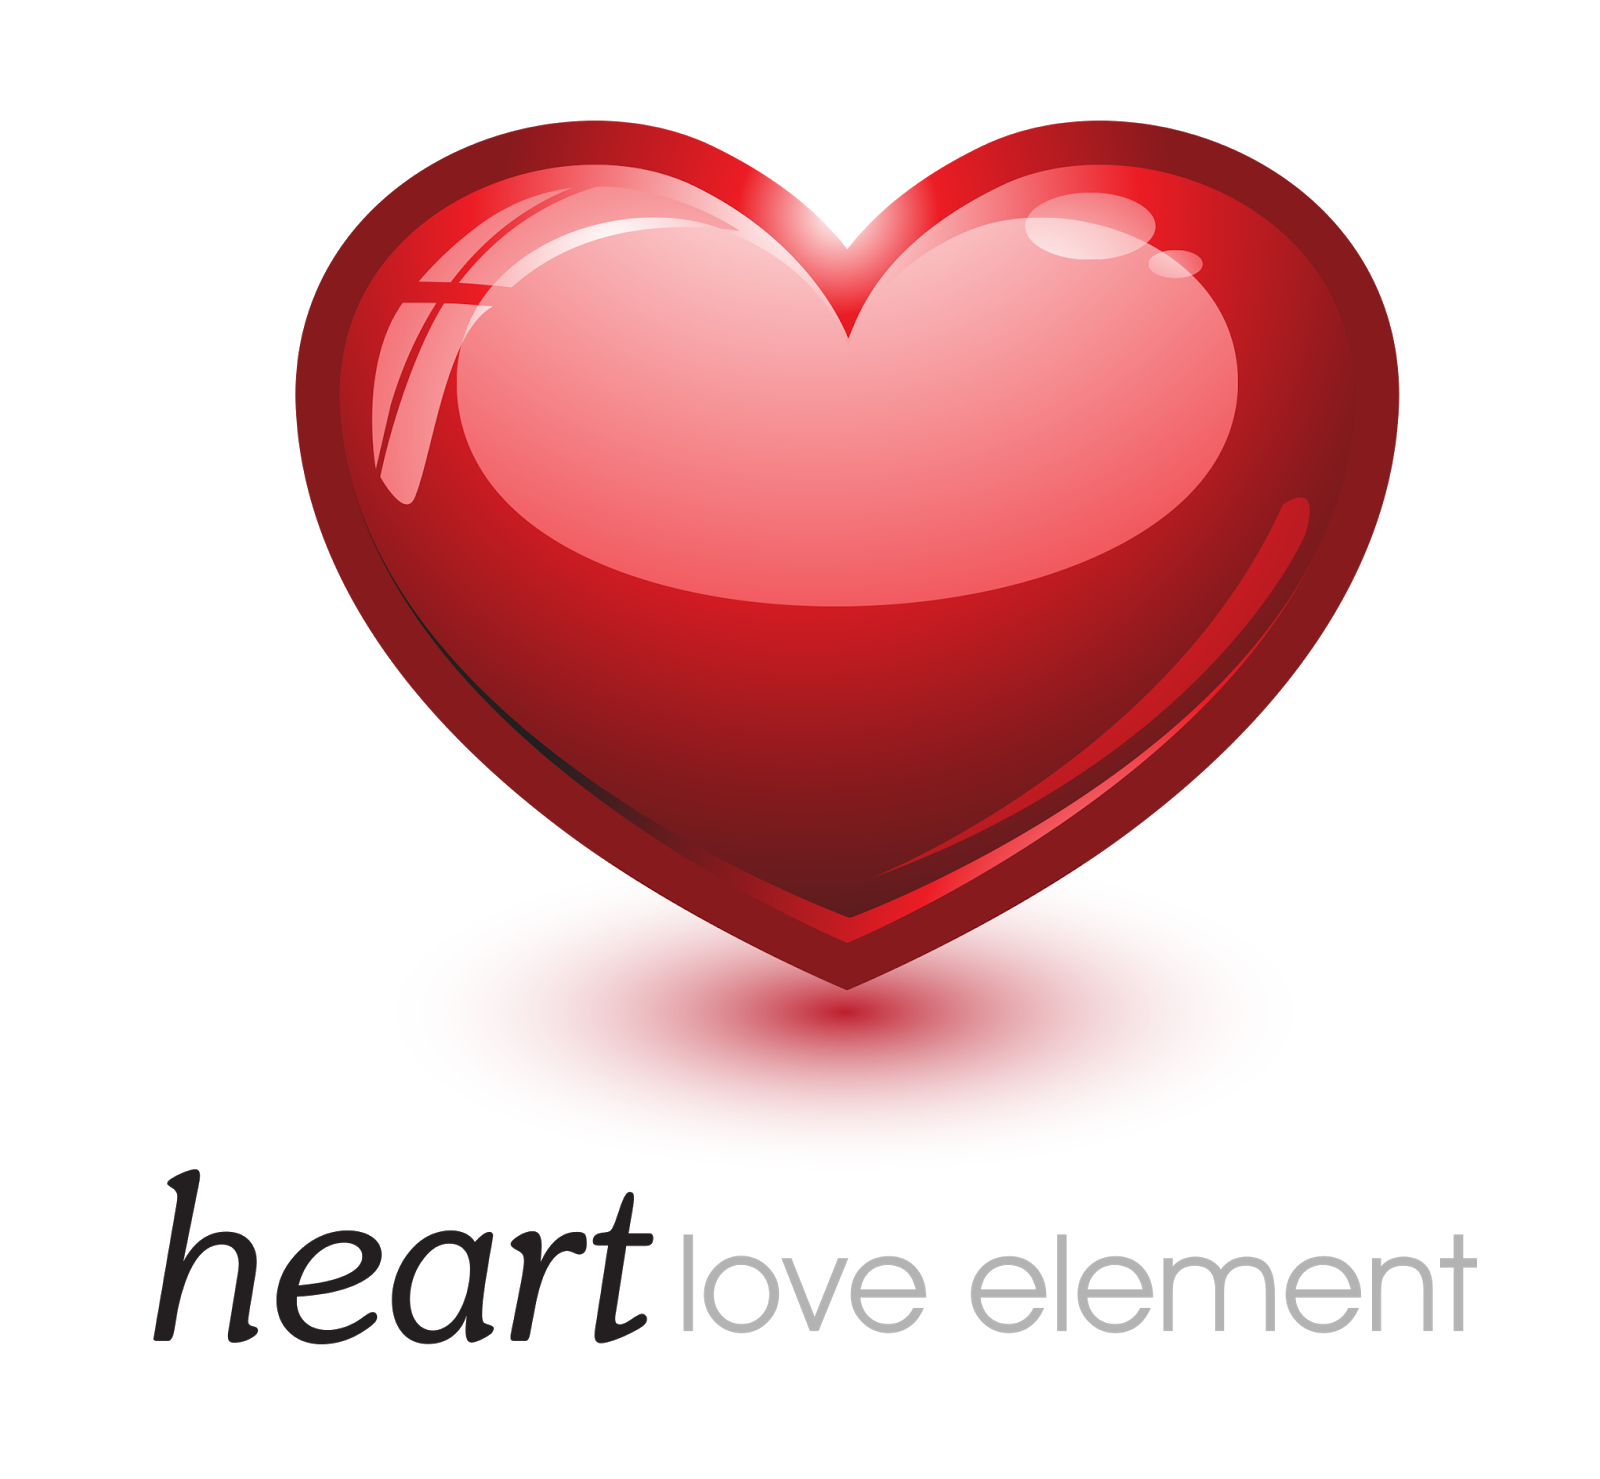 11 Love Heart Icon Images - Heart Icon, Heart Love Symbol ...